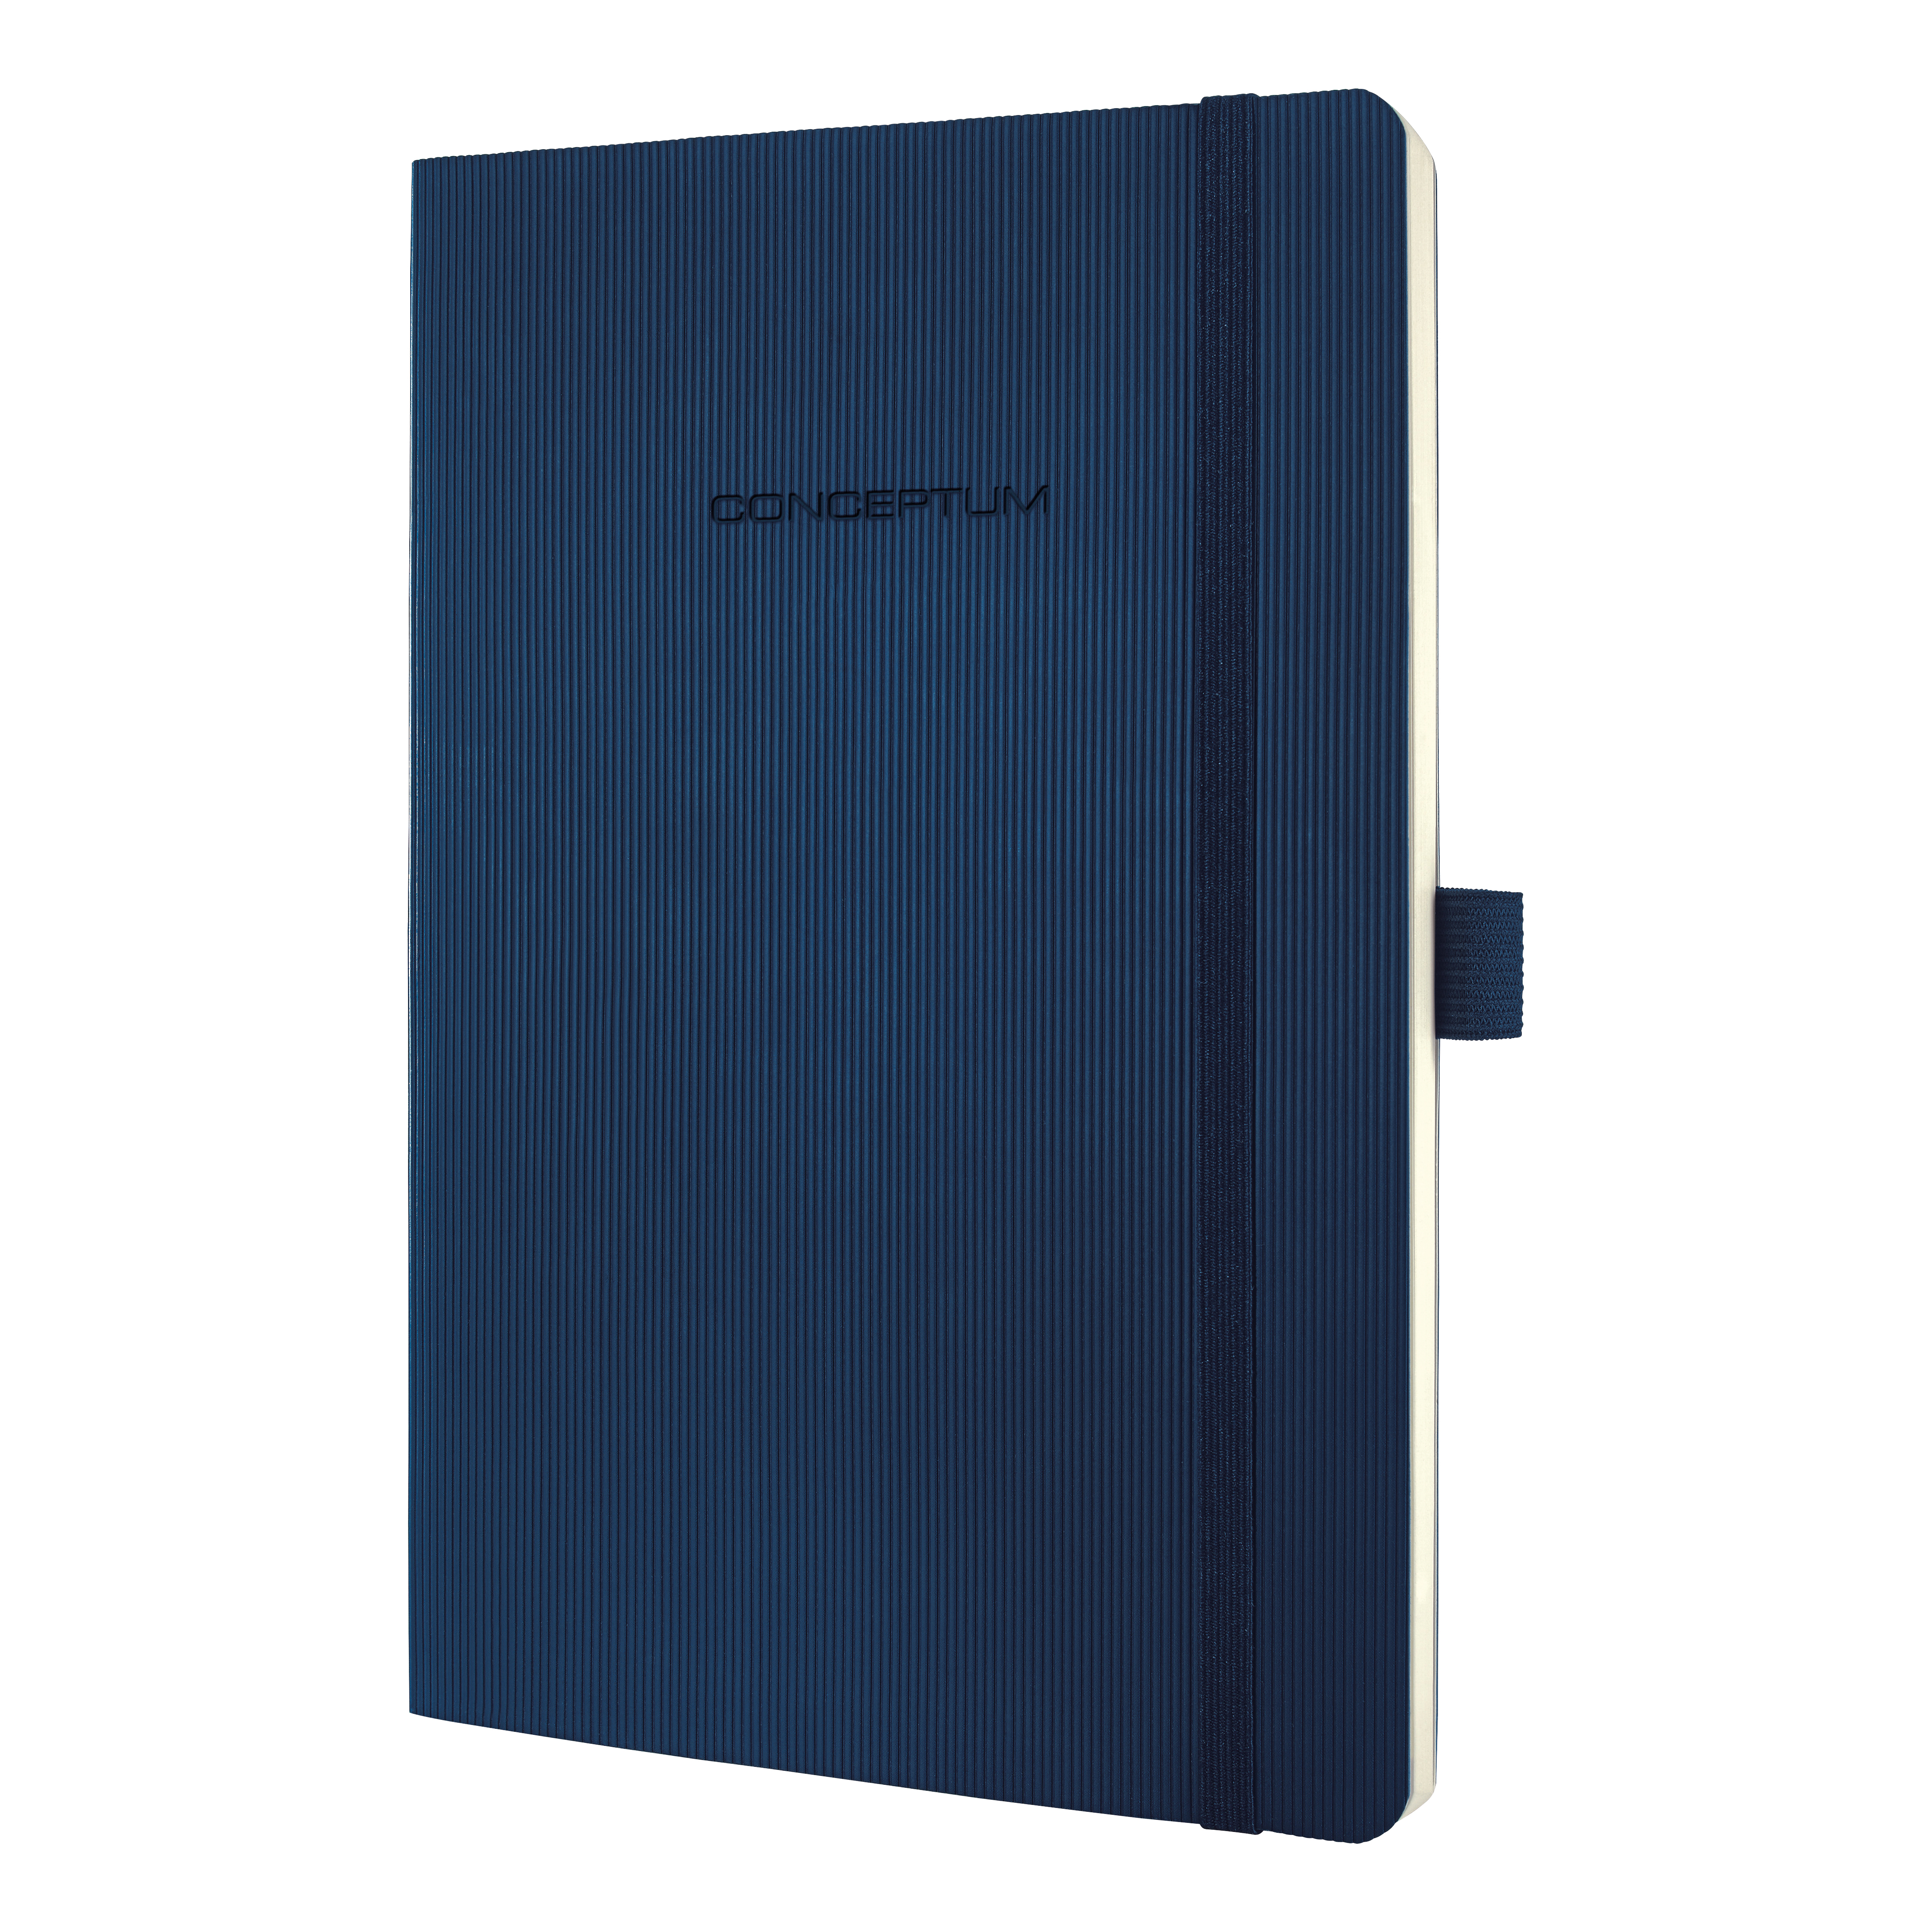 Image for Sigel Conceptum Notebook Soft Cover 80gsm Ruled and Numbered 194pp PEFC A5 Midnight Blue Ref CO327